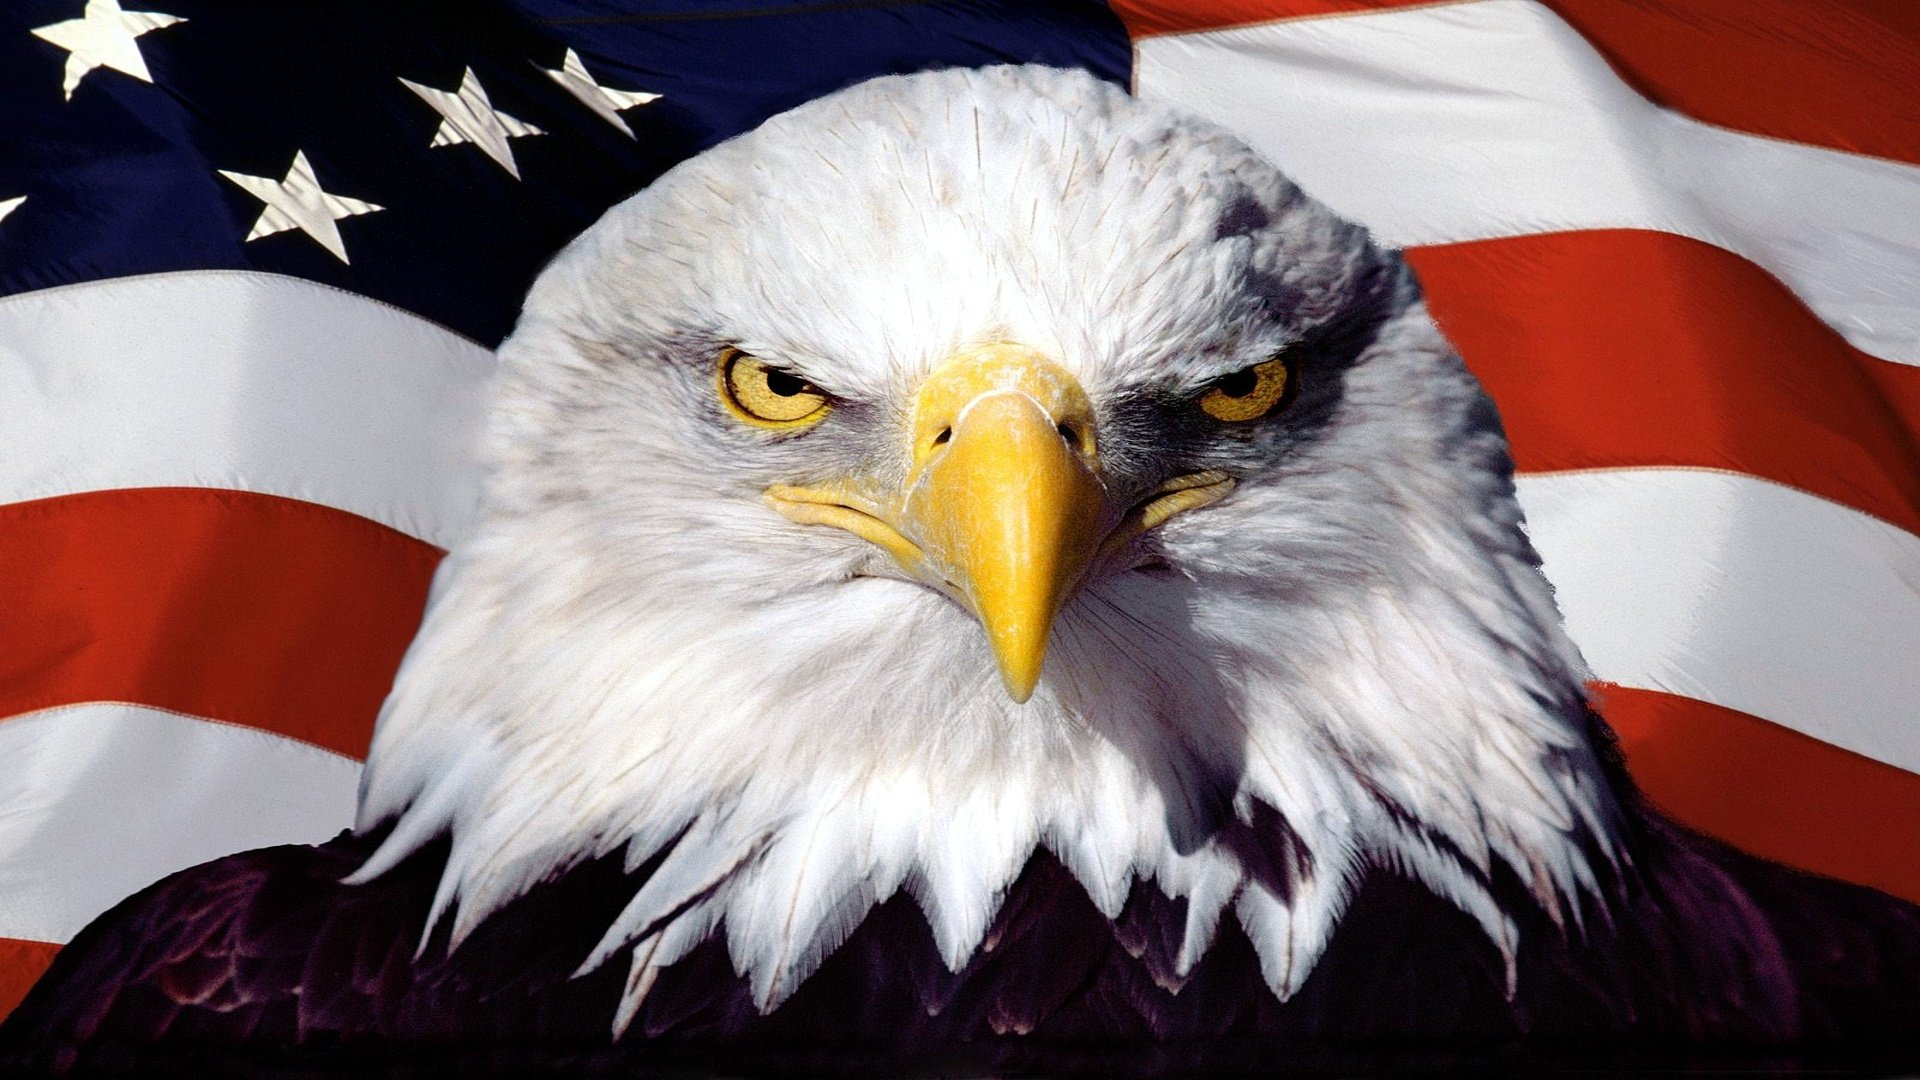 American Flag Eagle Wallpaper image gallery 1920x1080